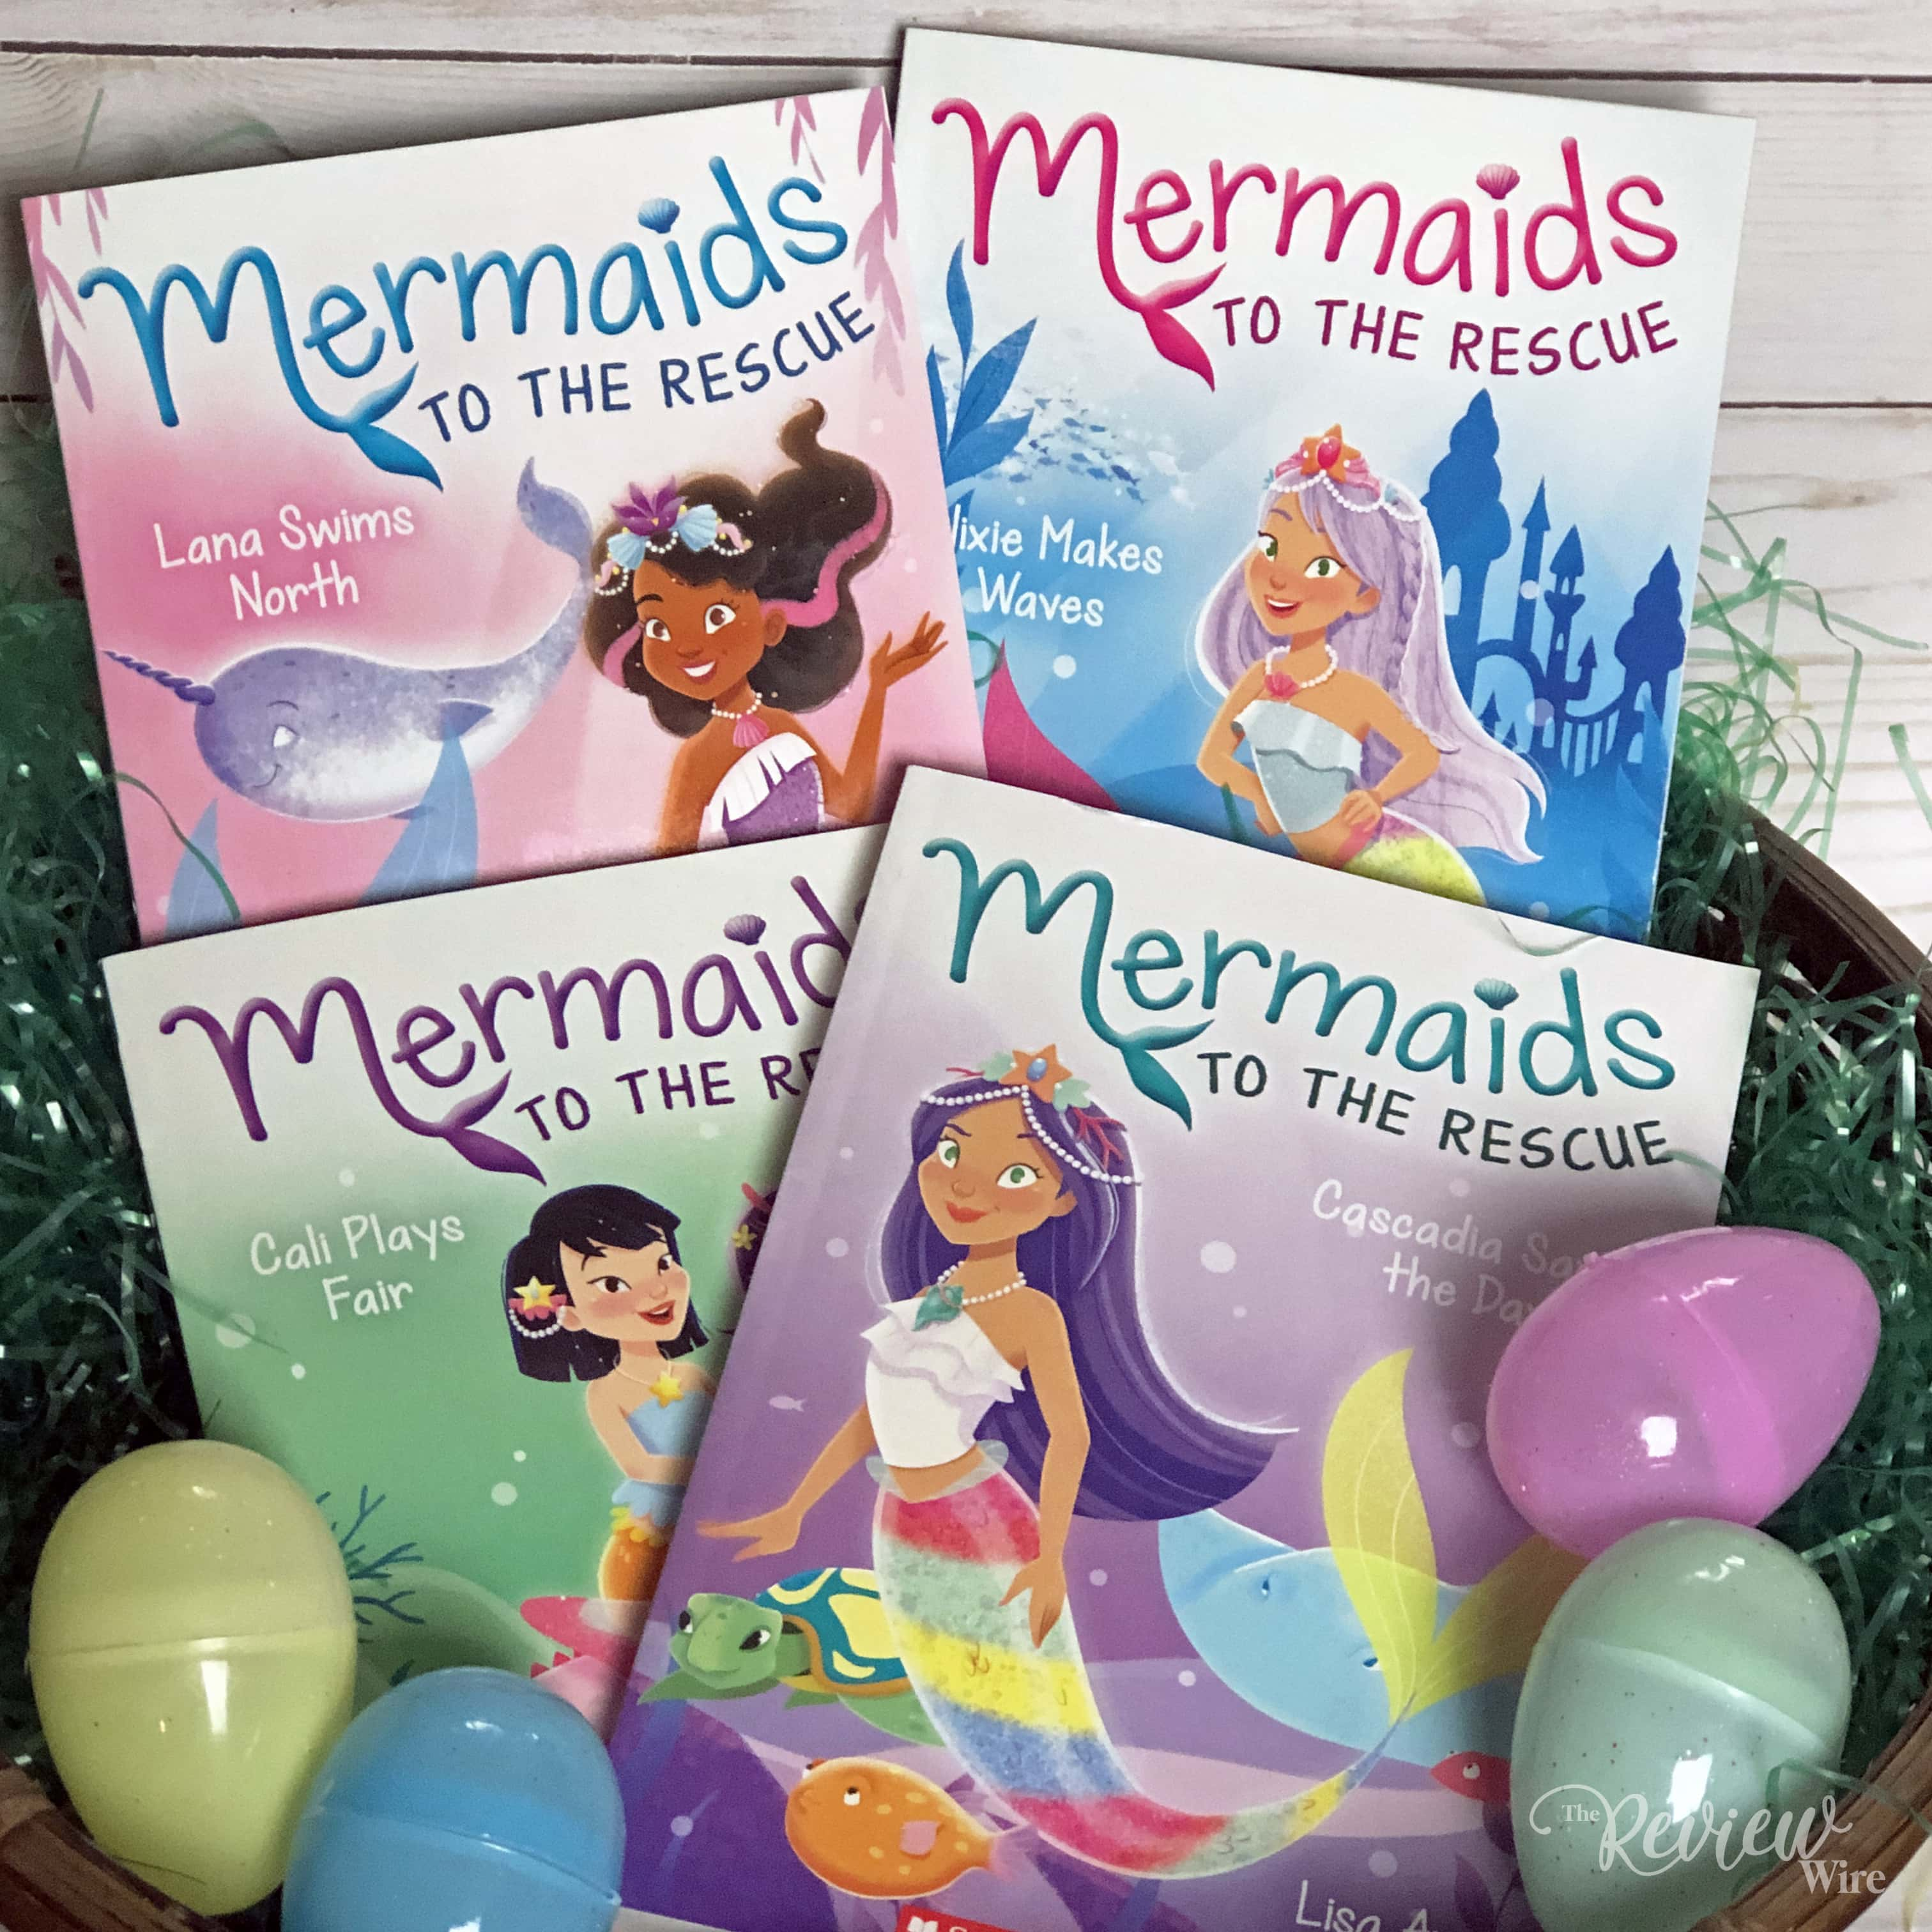 Mermaids to the Rescue